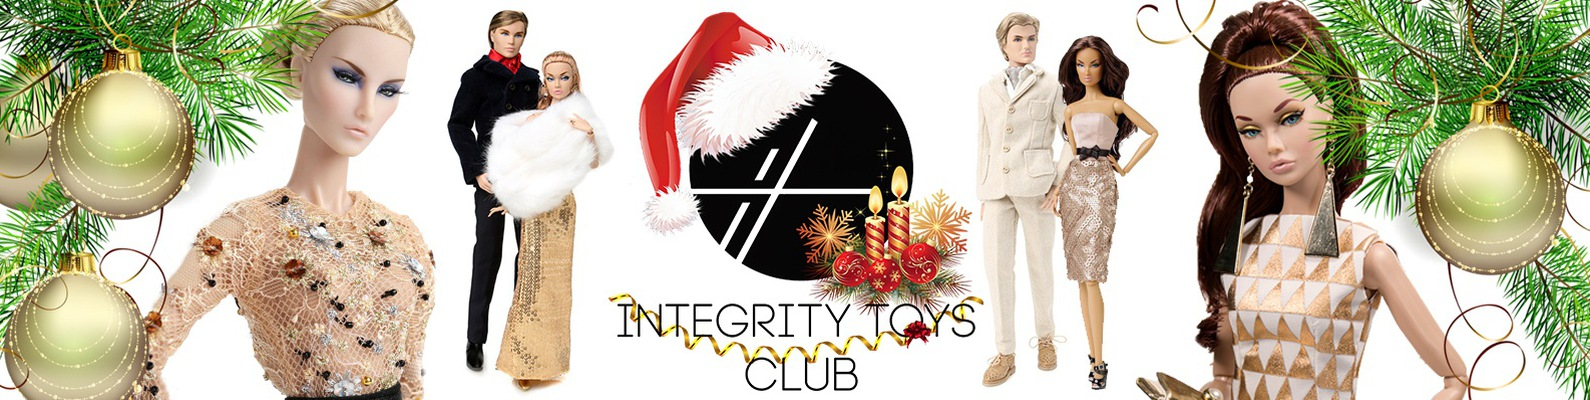 integrity club Home of integrity cycling club a social cycling club for all.